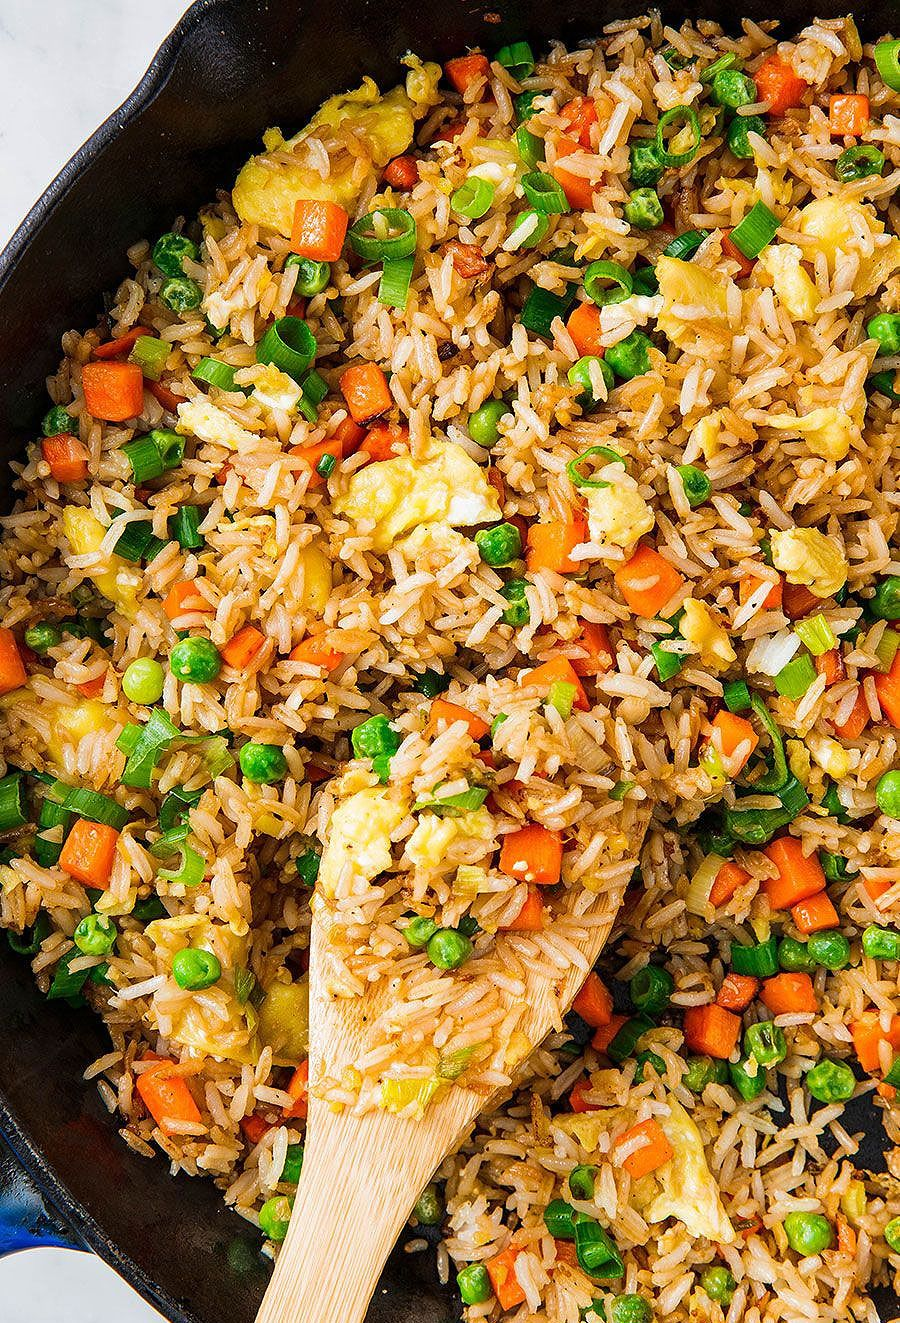 How To Make Take-Out Fried Rice #chickenalfredo